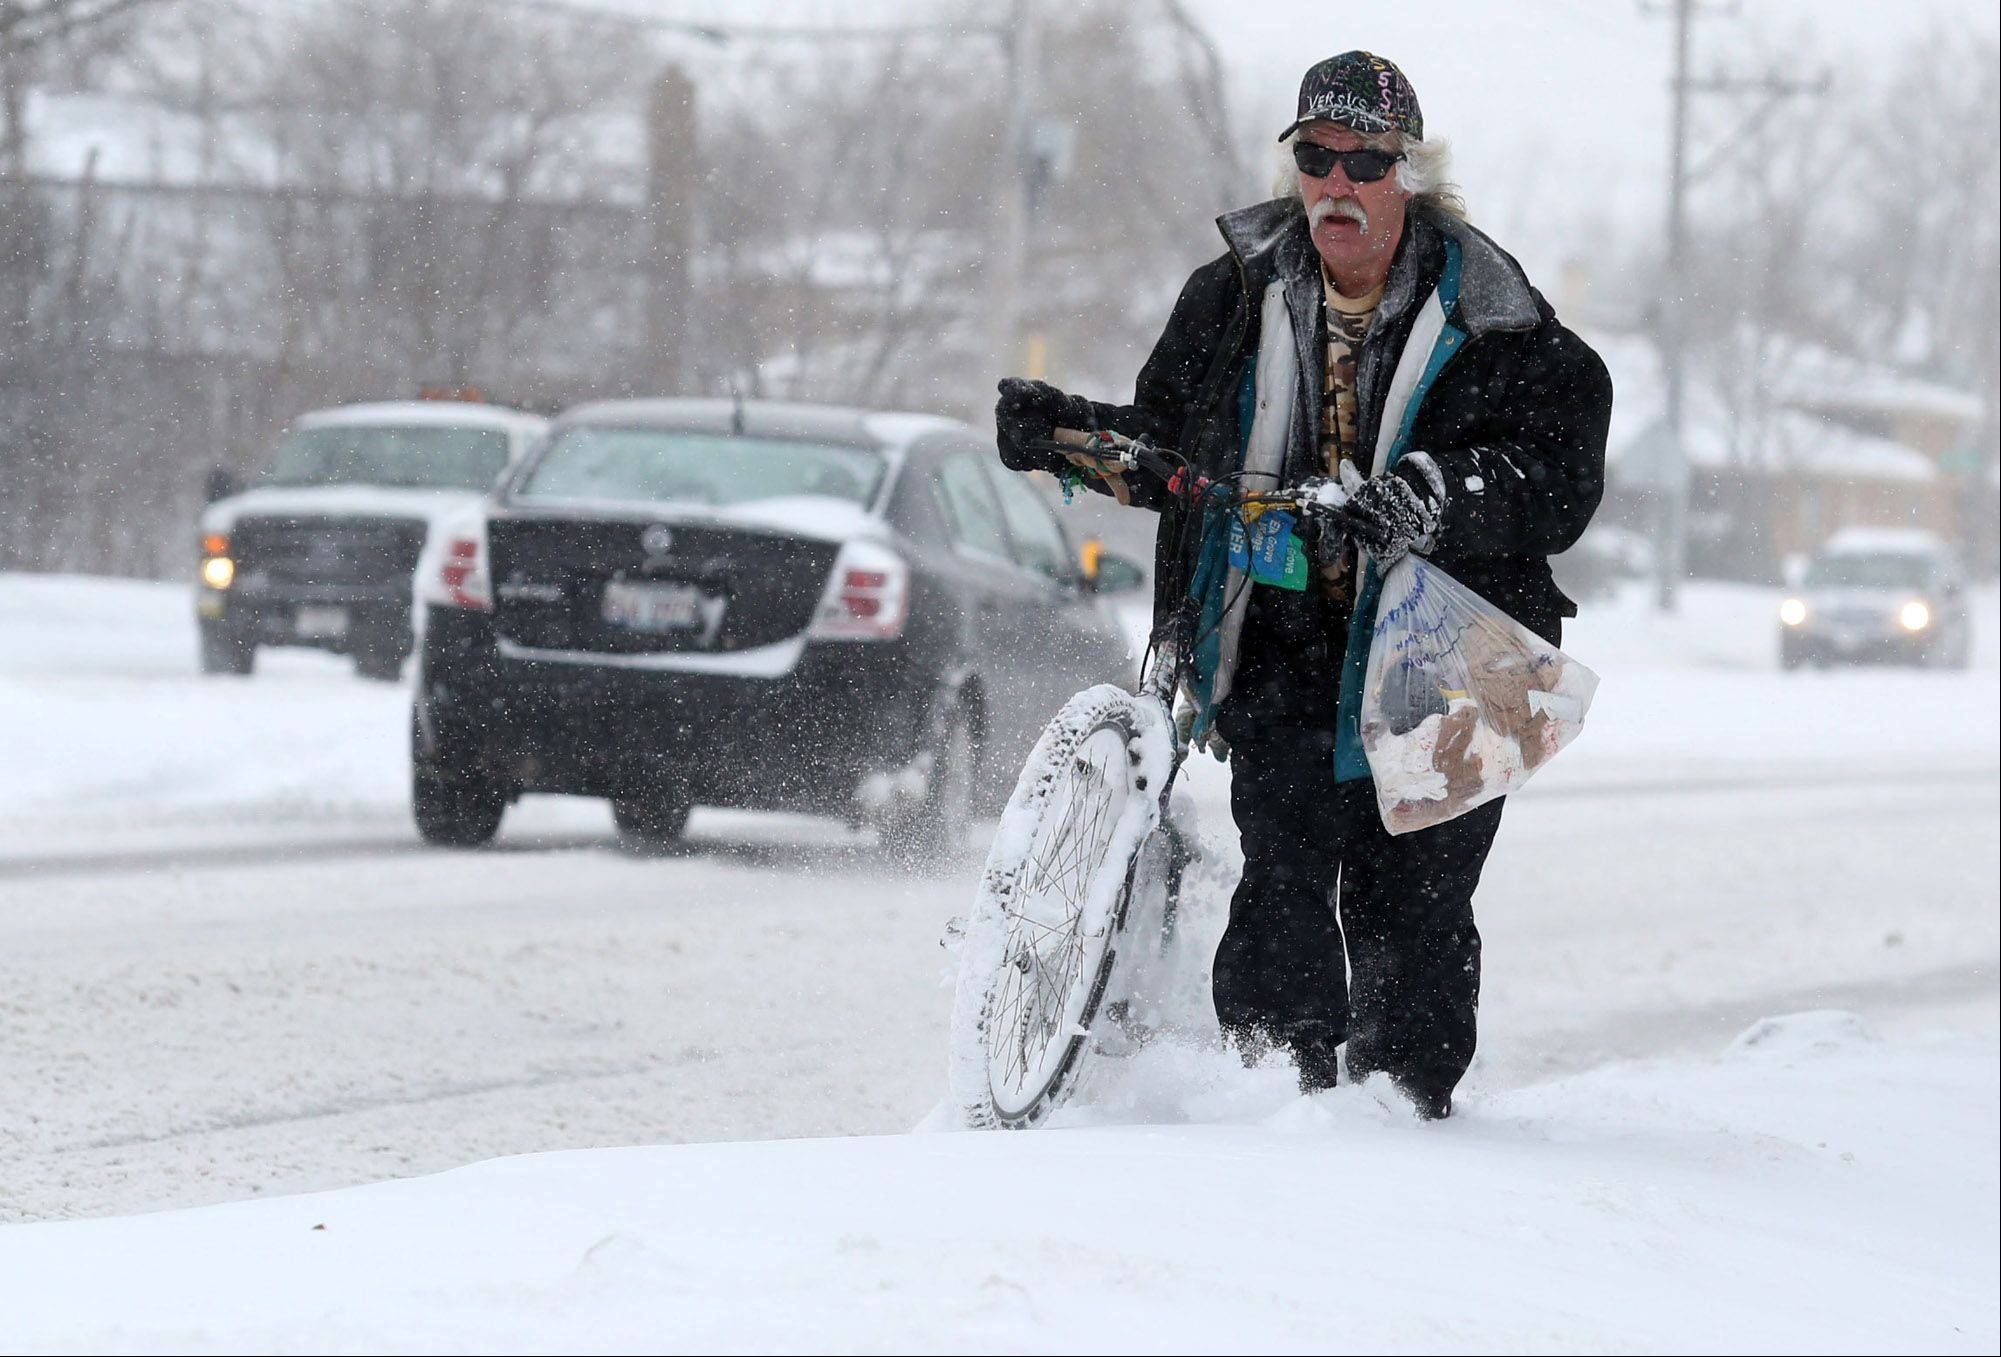 Rich Carlson of Des Plaines said he was riding, and mostly pushing, his bike on a 6-mile trip for exercise on Golf Road on Thursday in Des Plaines.